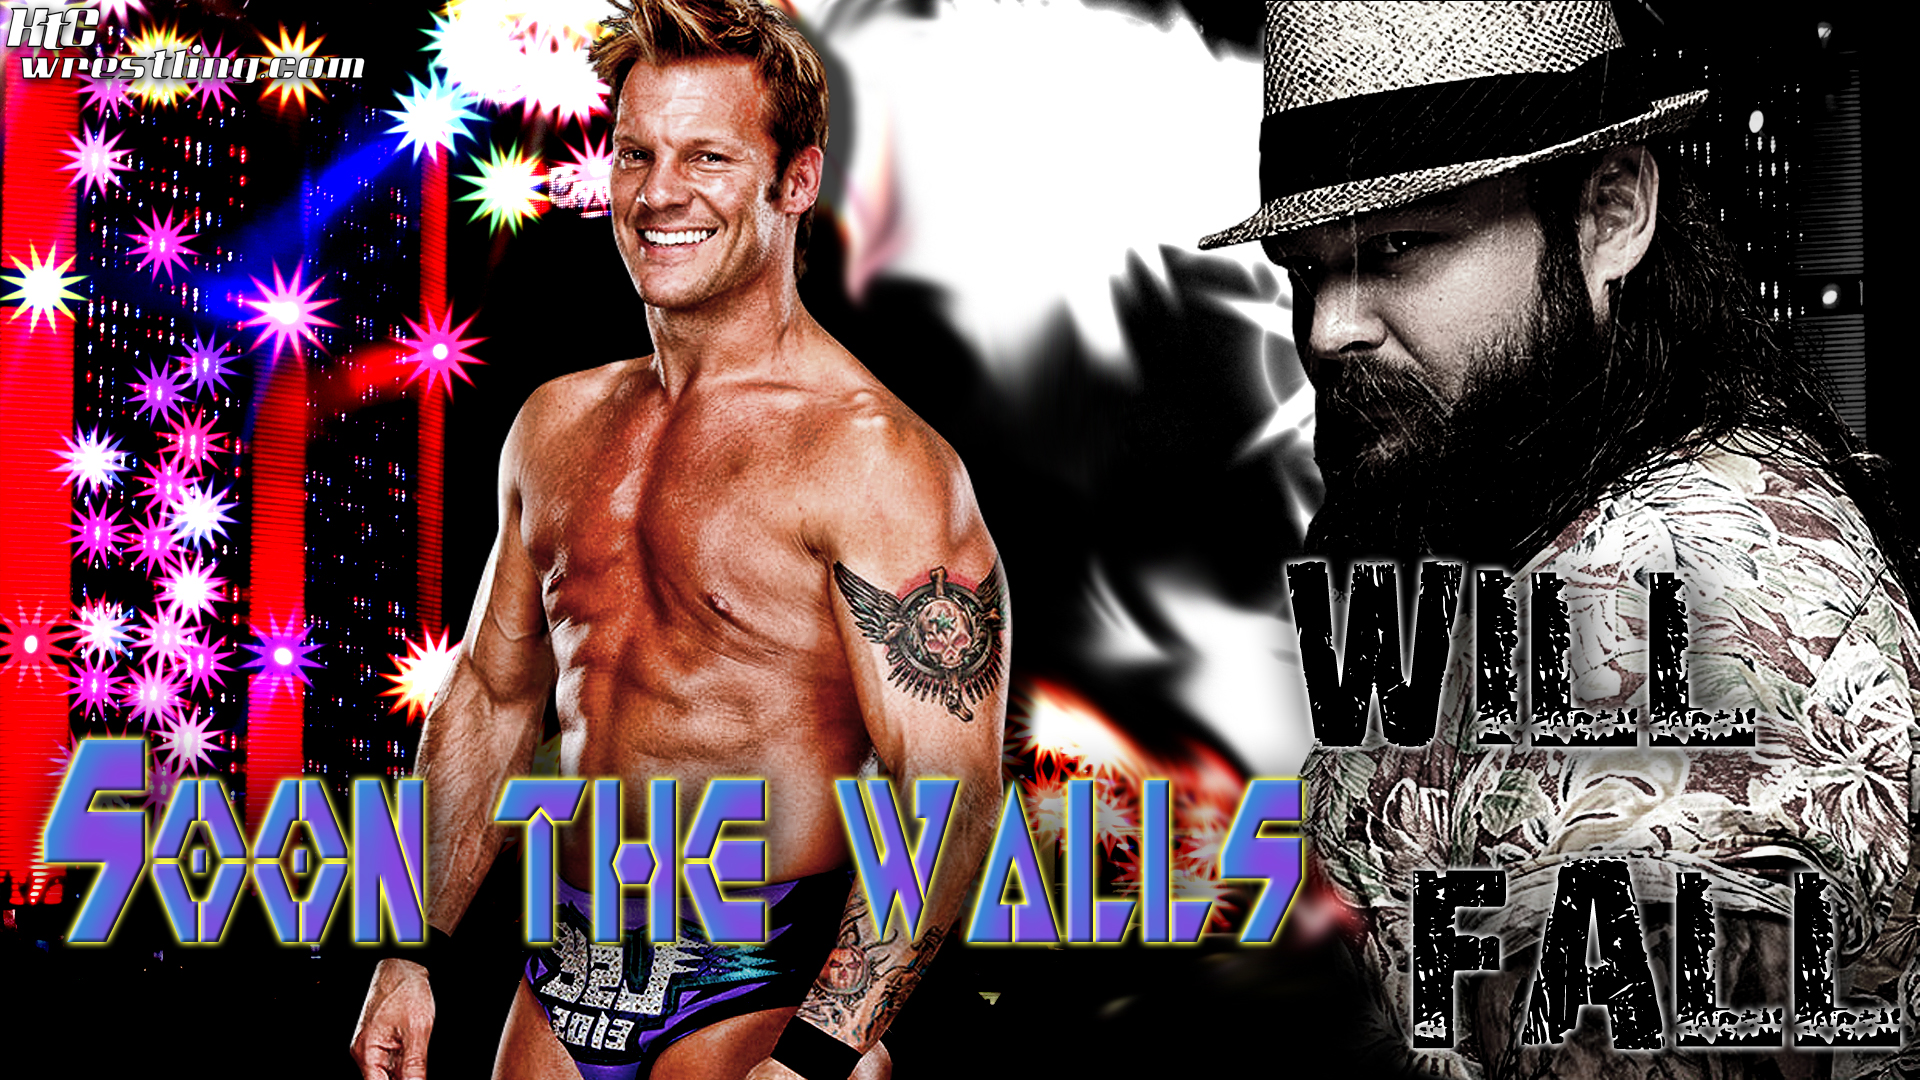 Chris Jericho vs Bray Wyatt - The Walls Will Fall Wallpaper